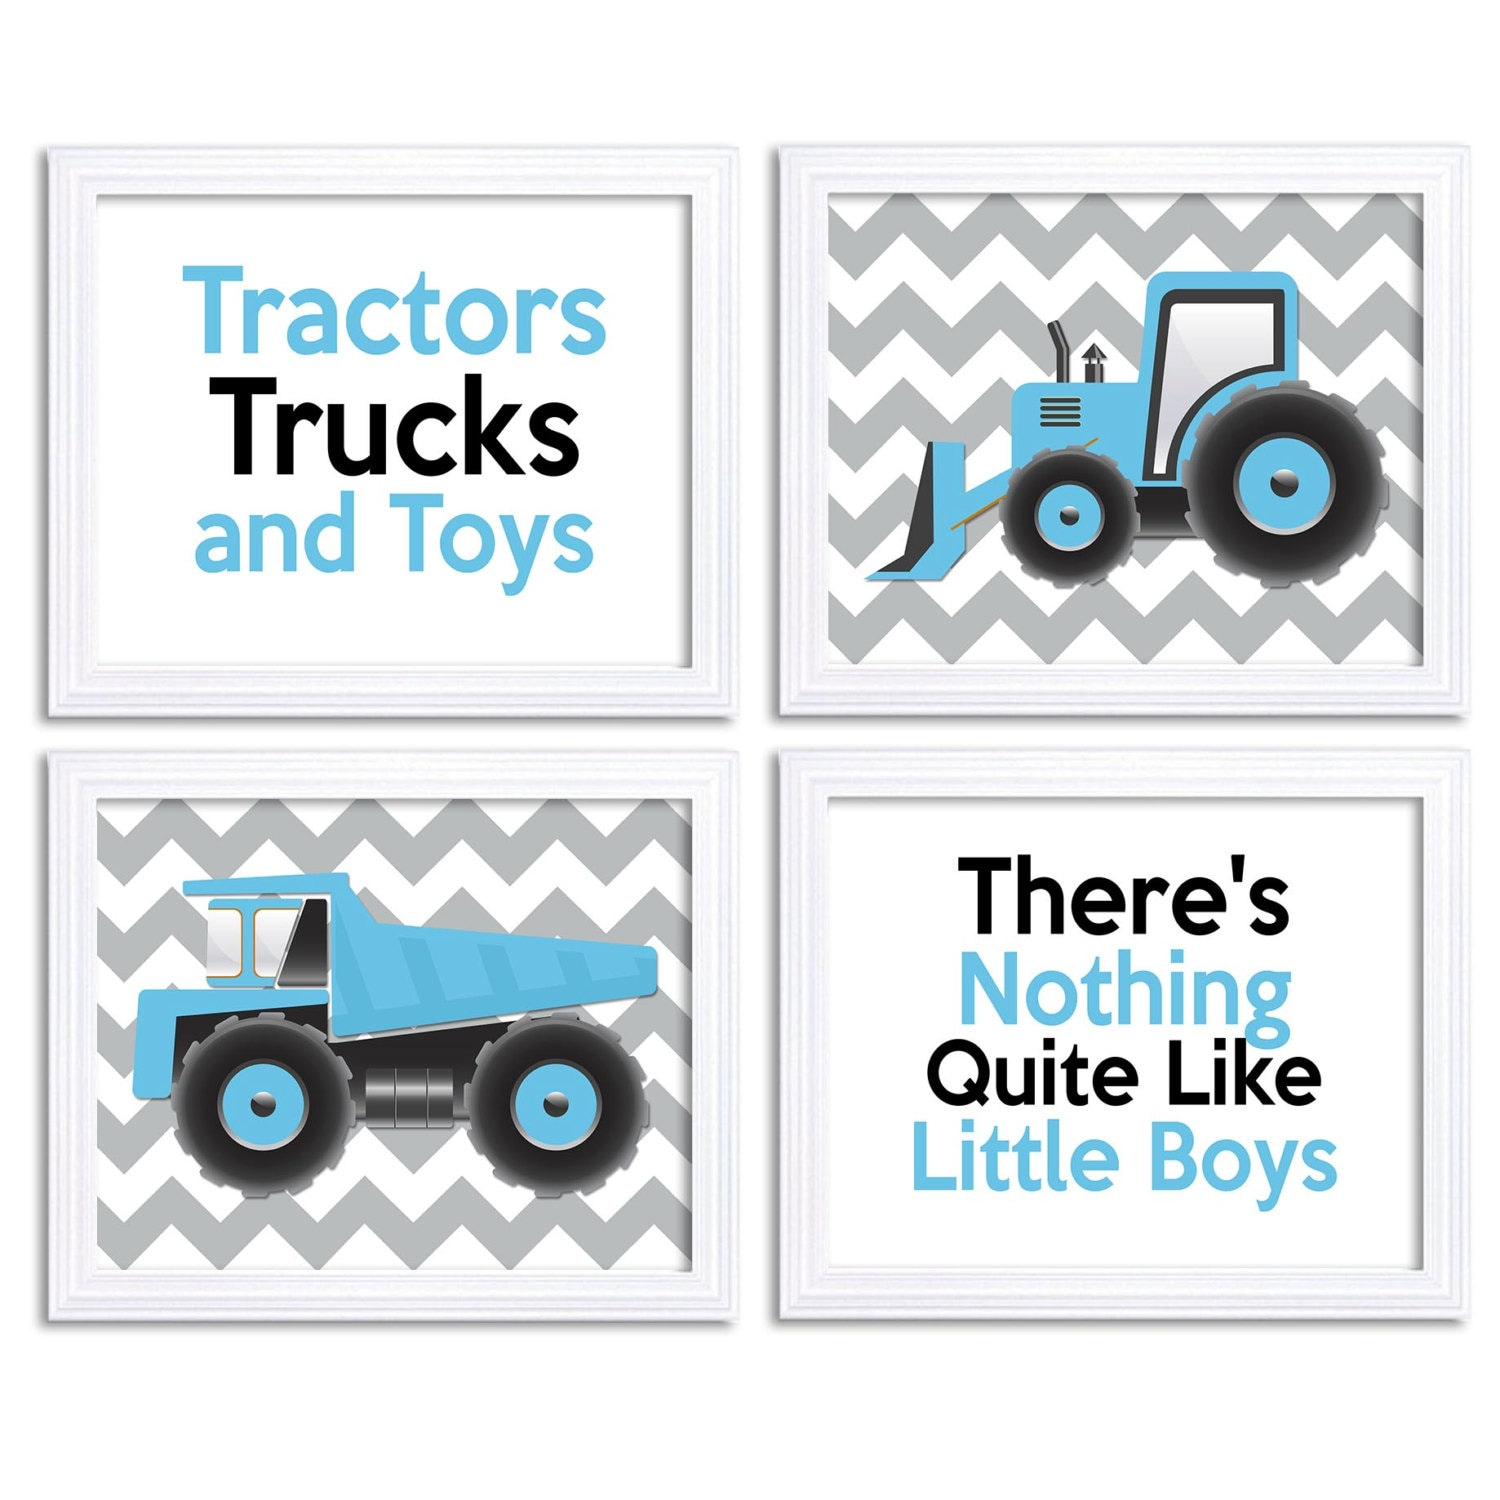 Black Baby Blue Tractor Truck Little Boys Transportation Construction Vehicle Heavy Machinery Set of